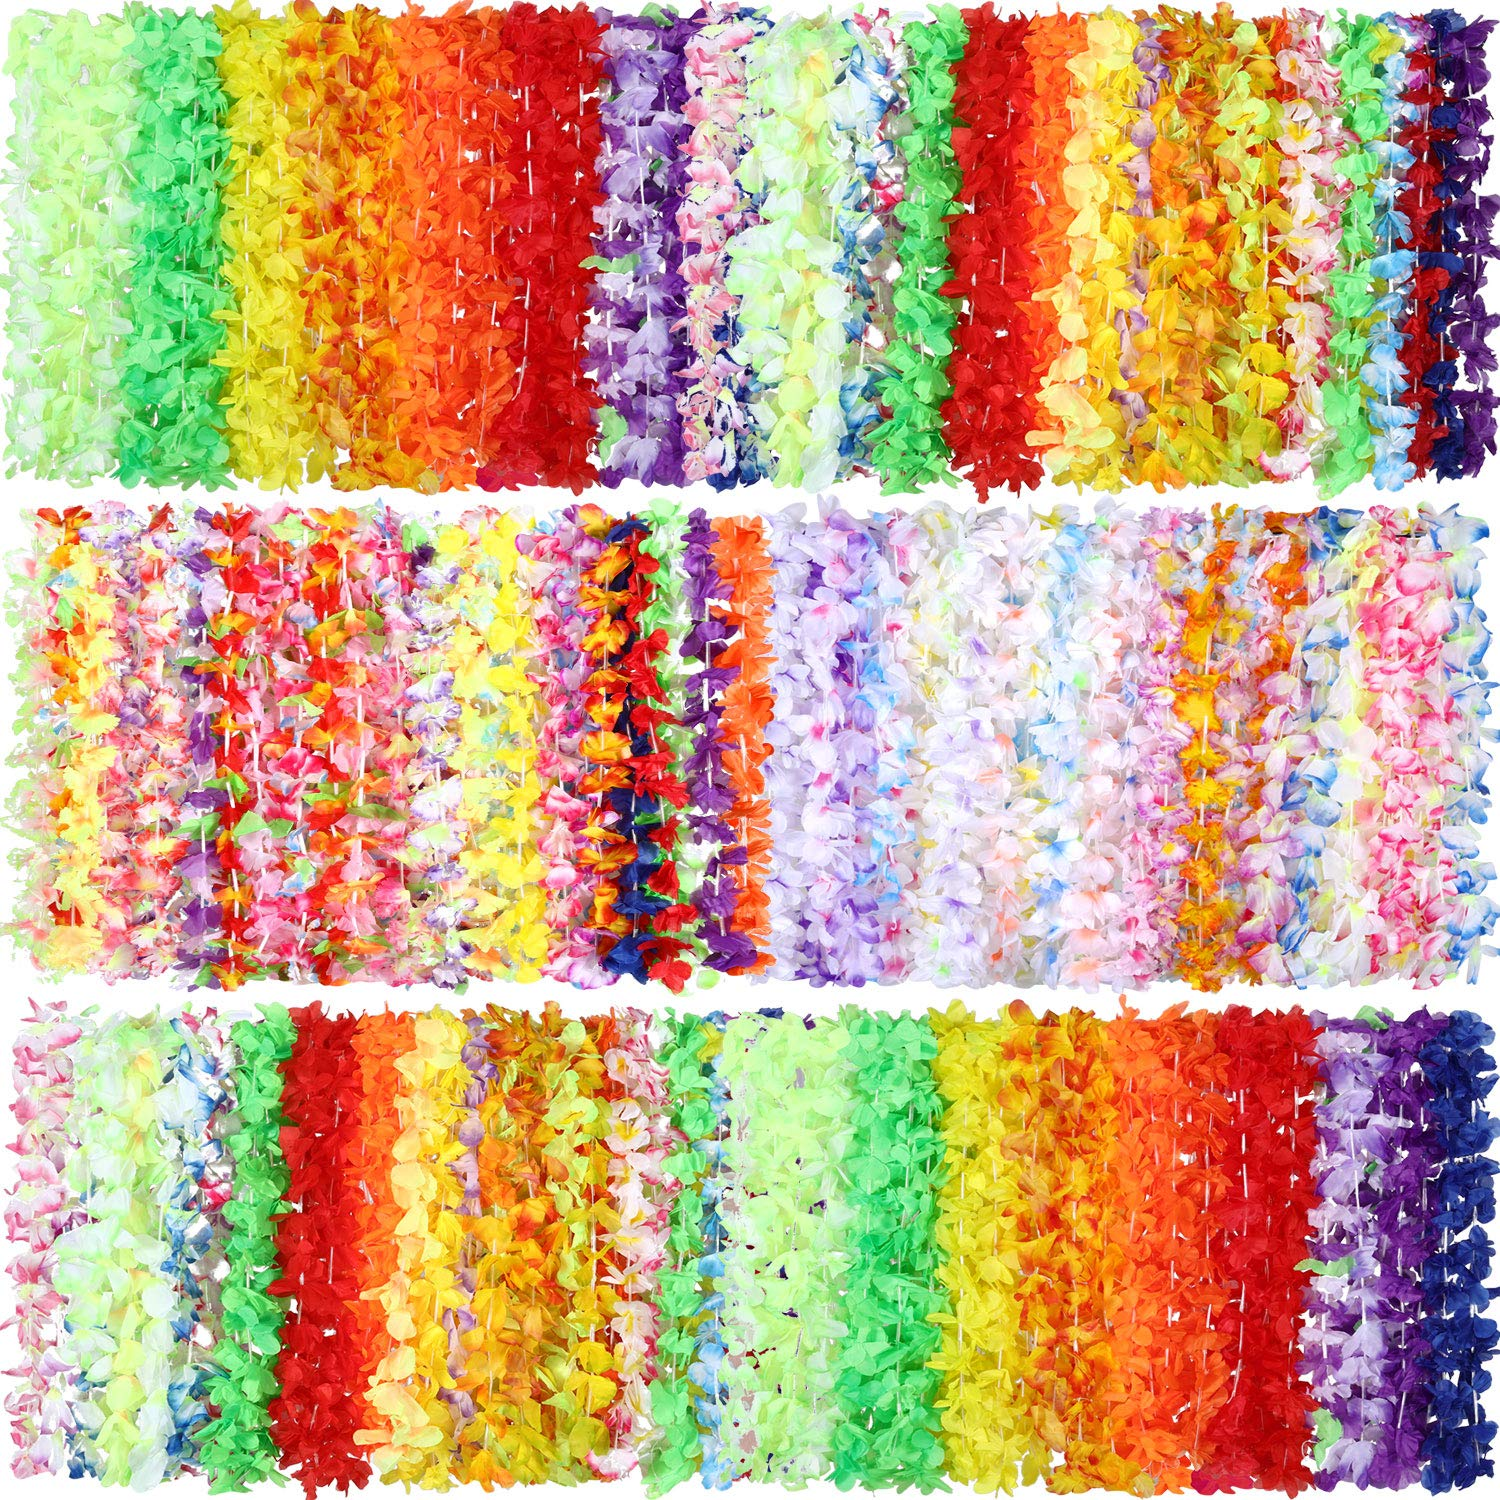 Shappy 100 Pieces Flower Tropical Hawaiian Leis Necklaces for Beach Theme Party Supplies Decorations Favors Ornaments (Style 2)